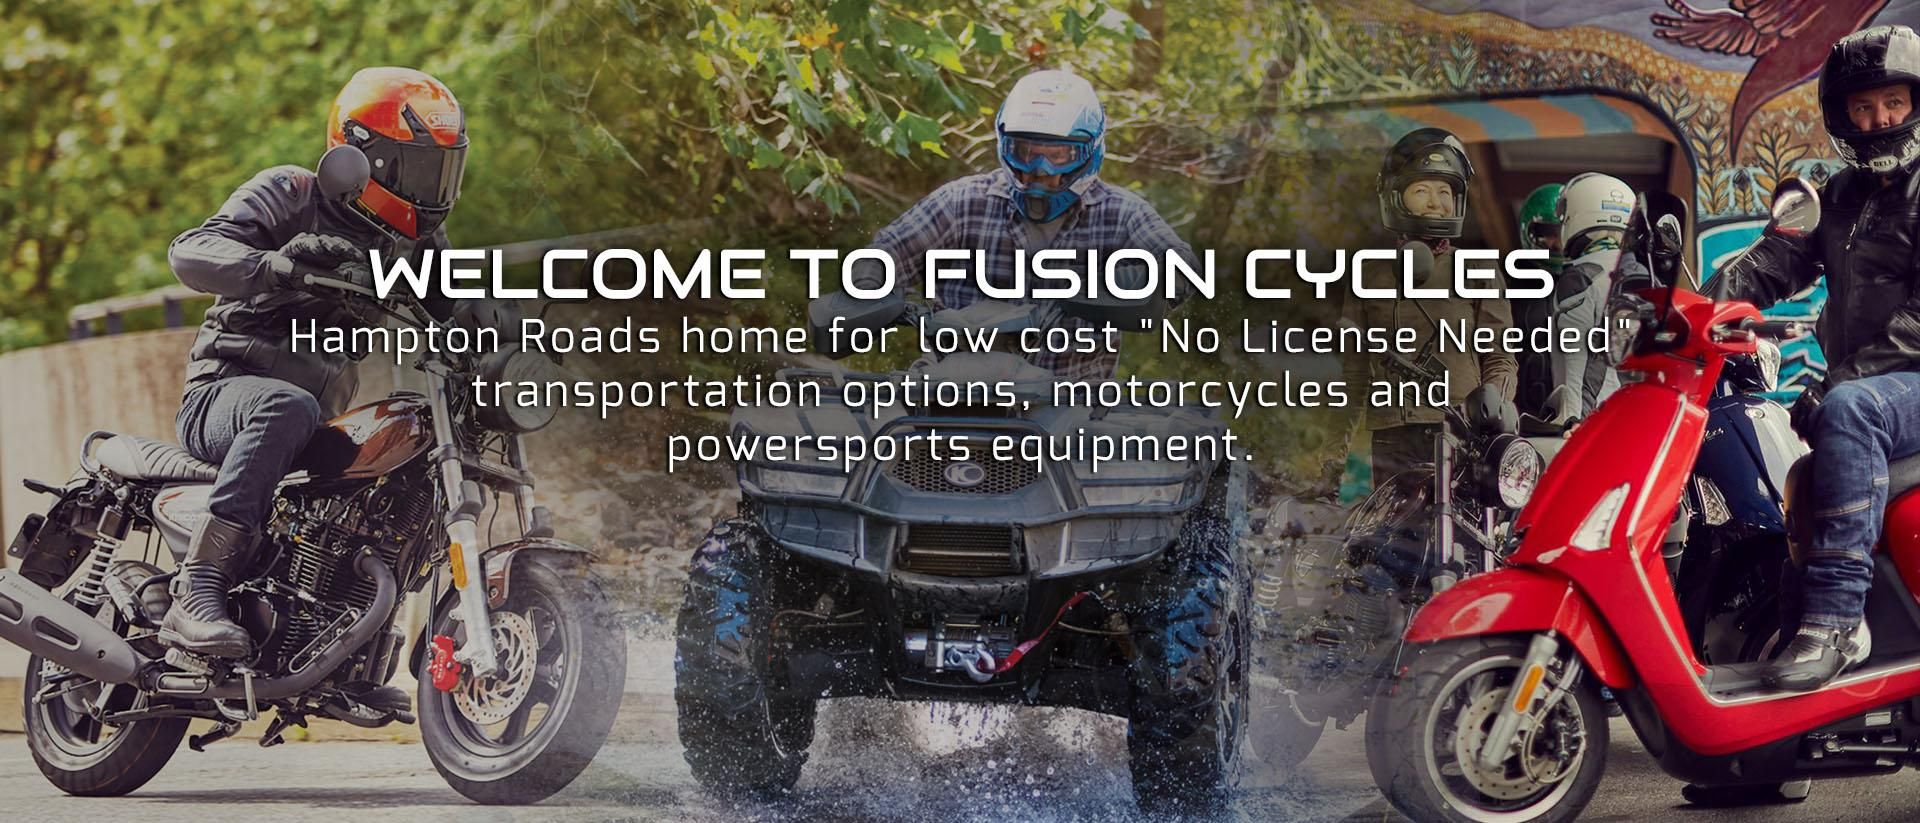 Fusion Cycles | Scooters, Mopeds & Motorcycles for Sale in